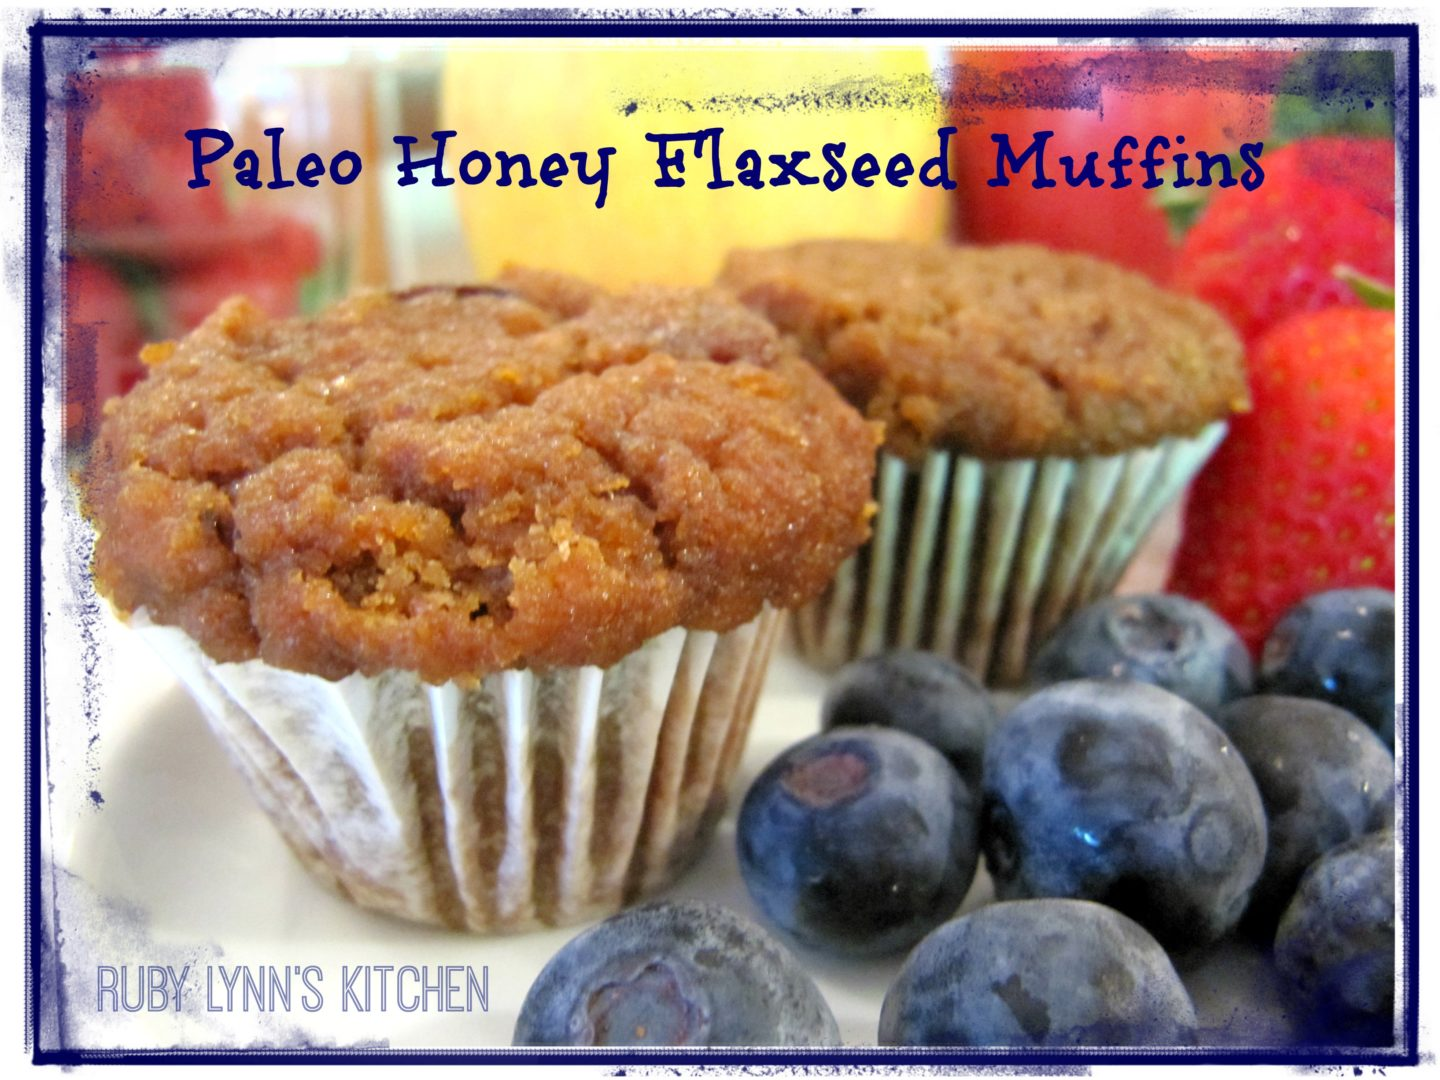 Delicious, soft and healthy Paleo Honey Flaxseed Muffins